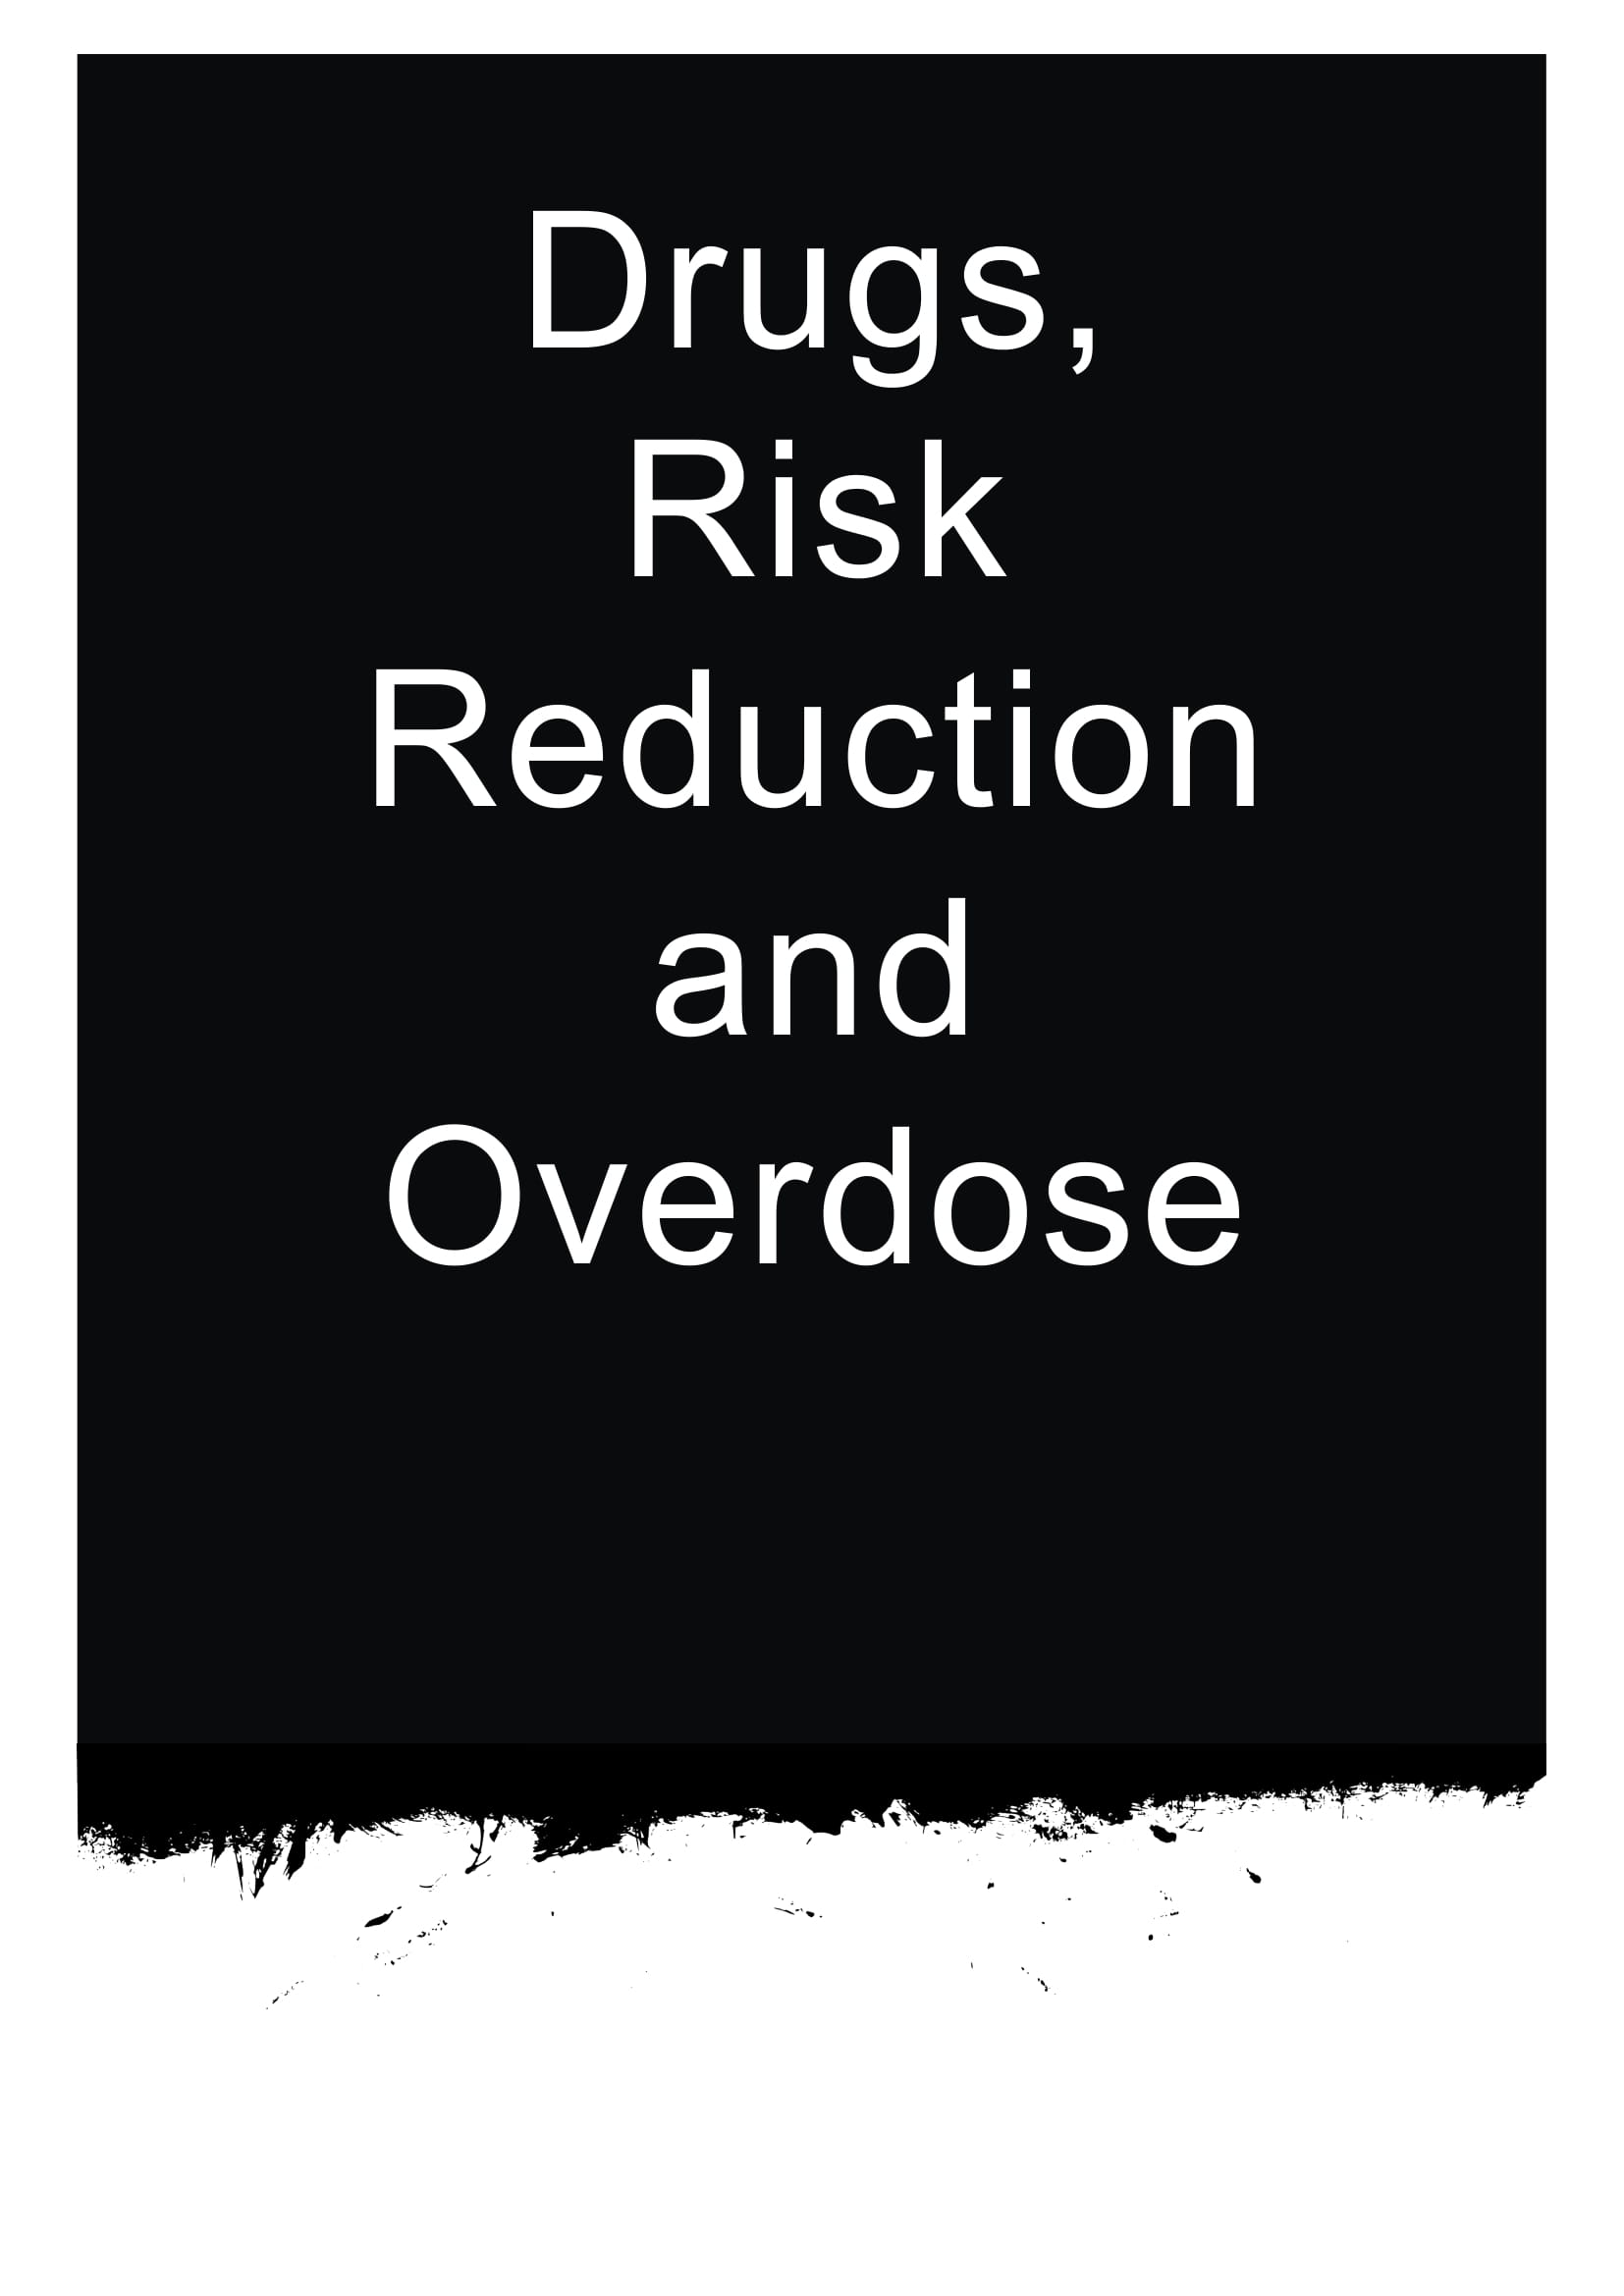 Drugs, Risk Reduction and Overdose